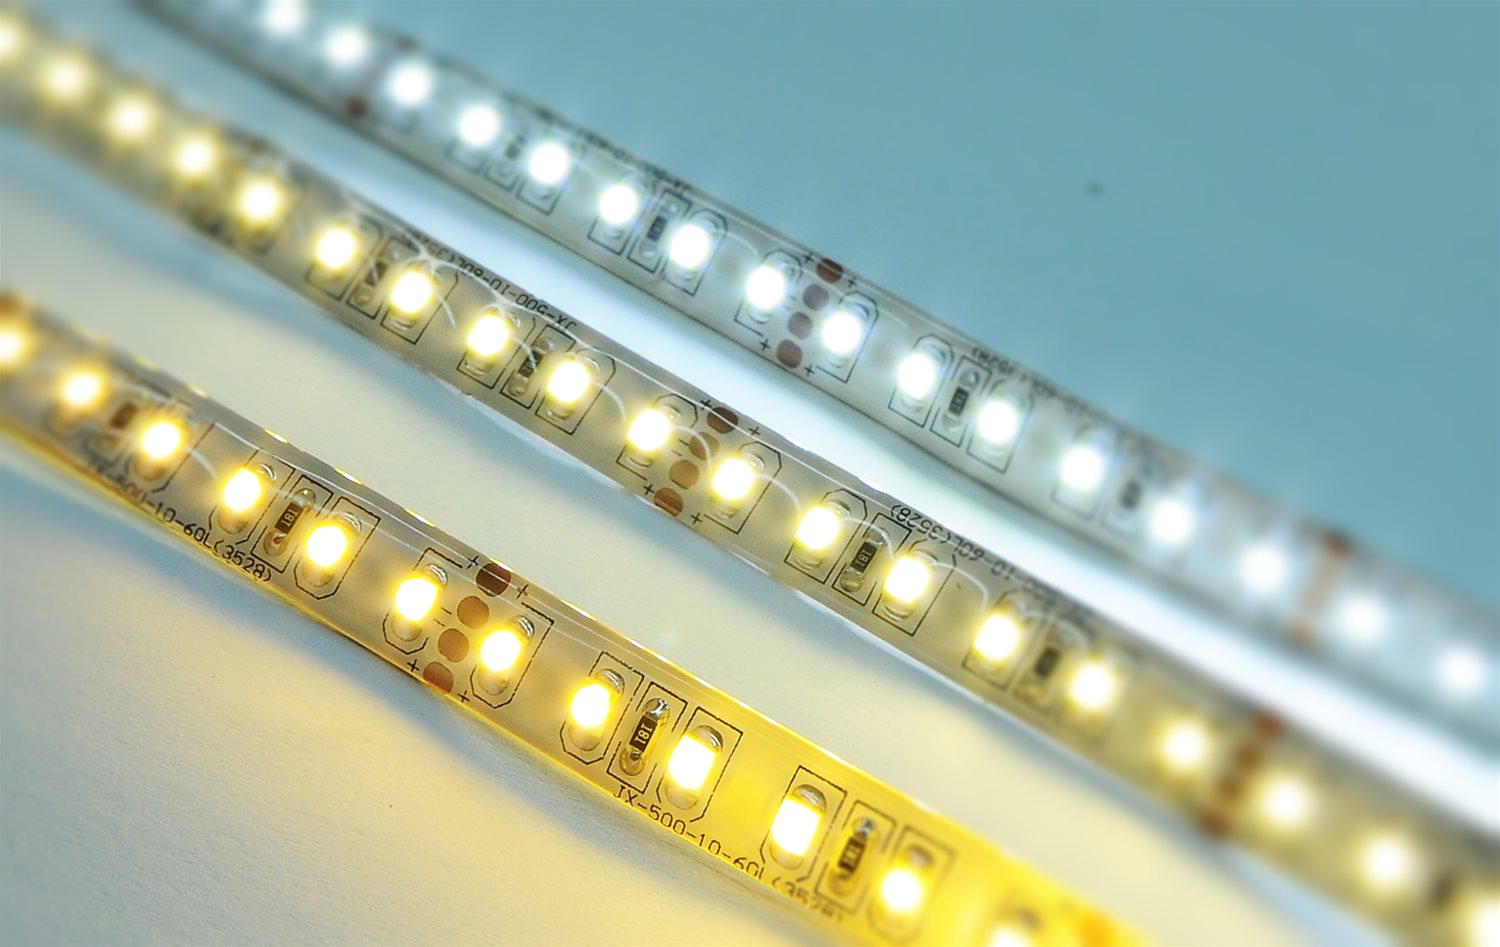 LED Tape Seamless 10m (120xSMD 3528 LEDs/m) 24V 80W (1m=8W) 3400K Warm White Example